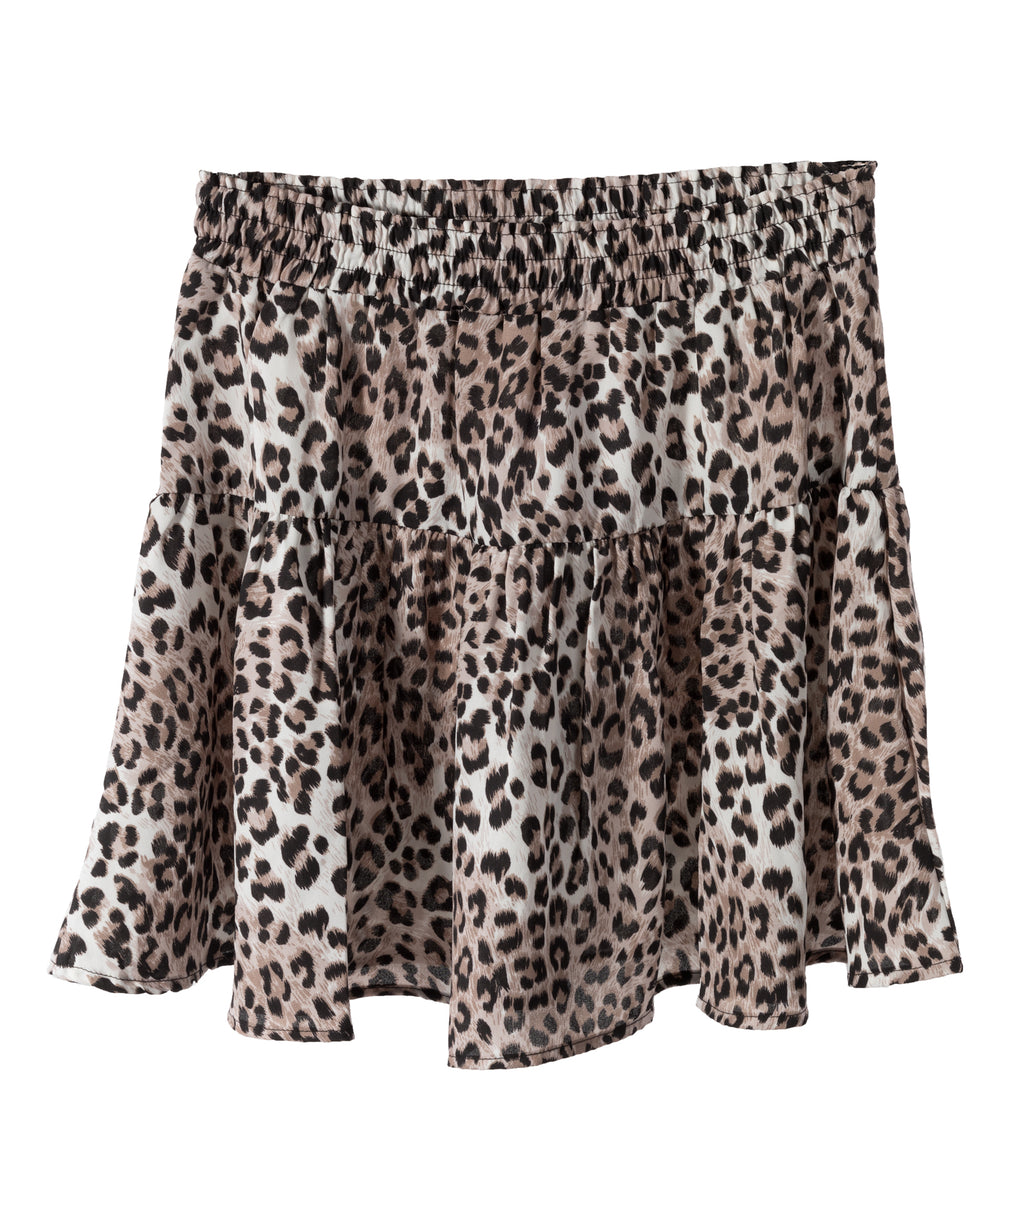 Me.n.u. Girls Leopard Skirt